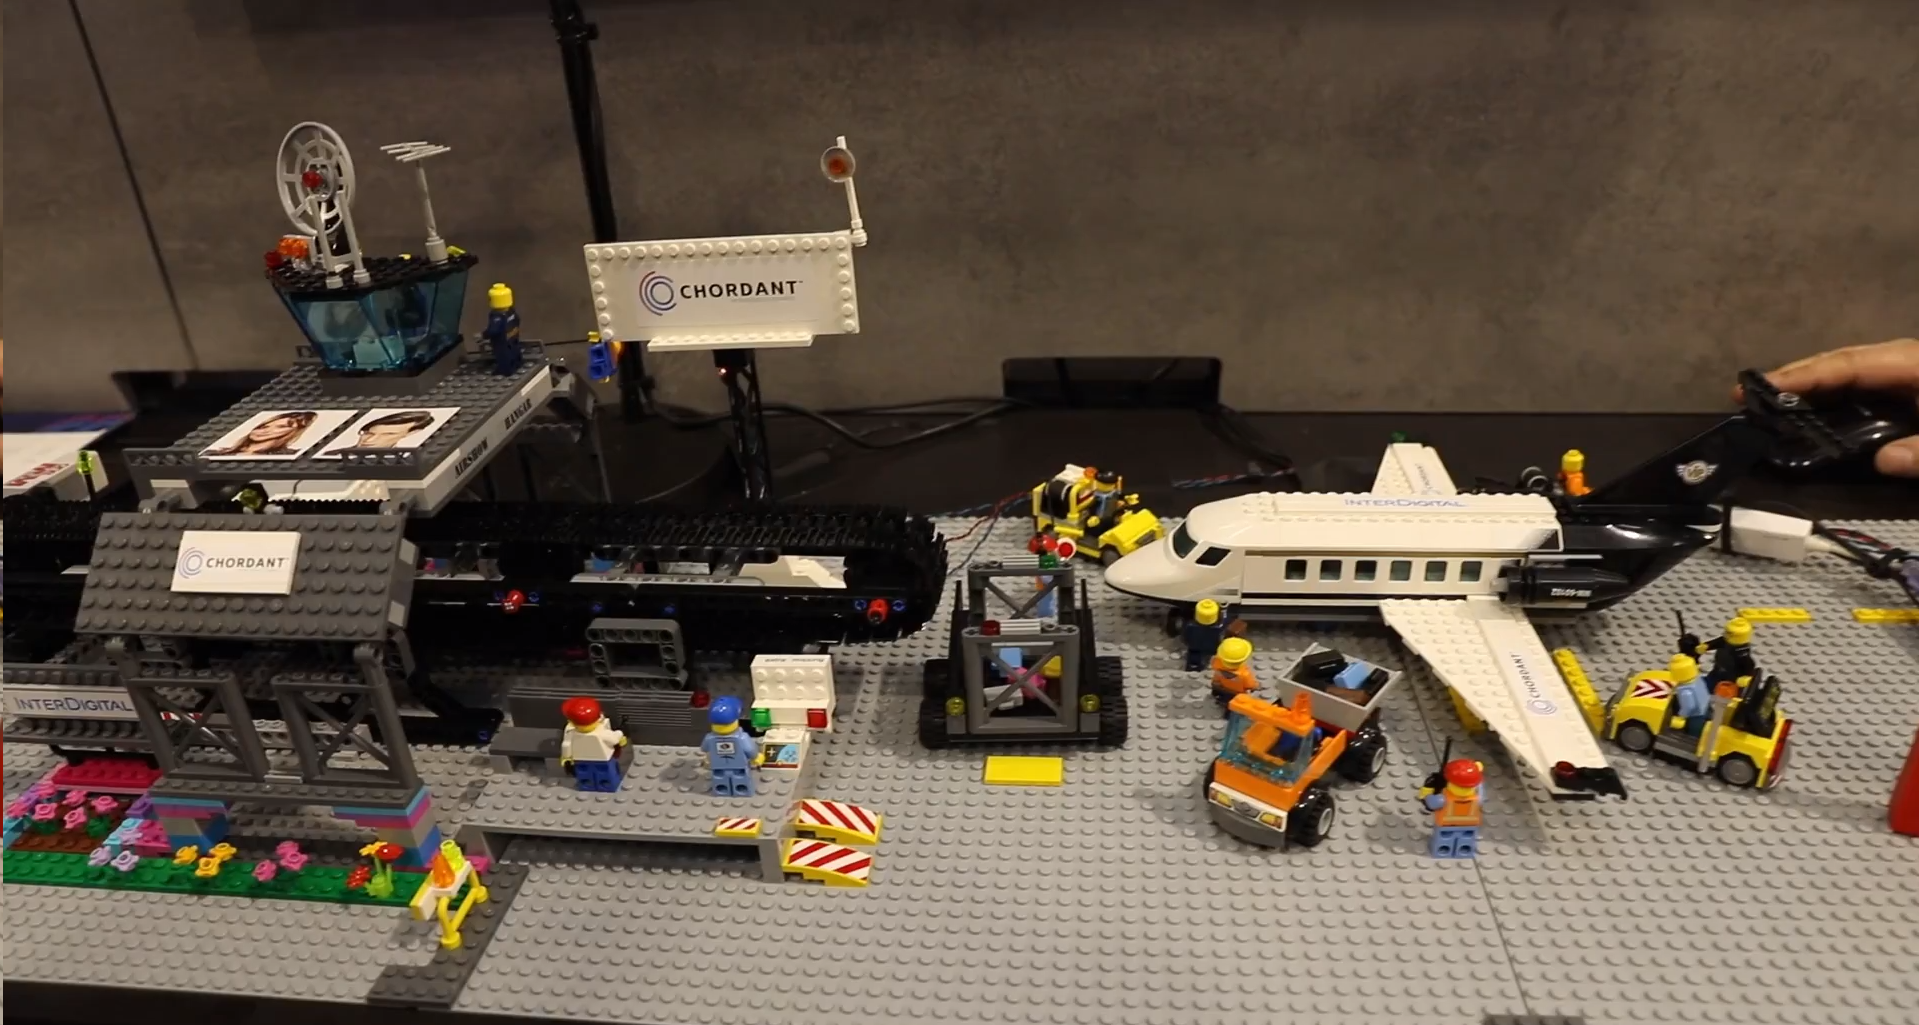 Smart Airport Demo from Chordant